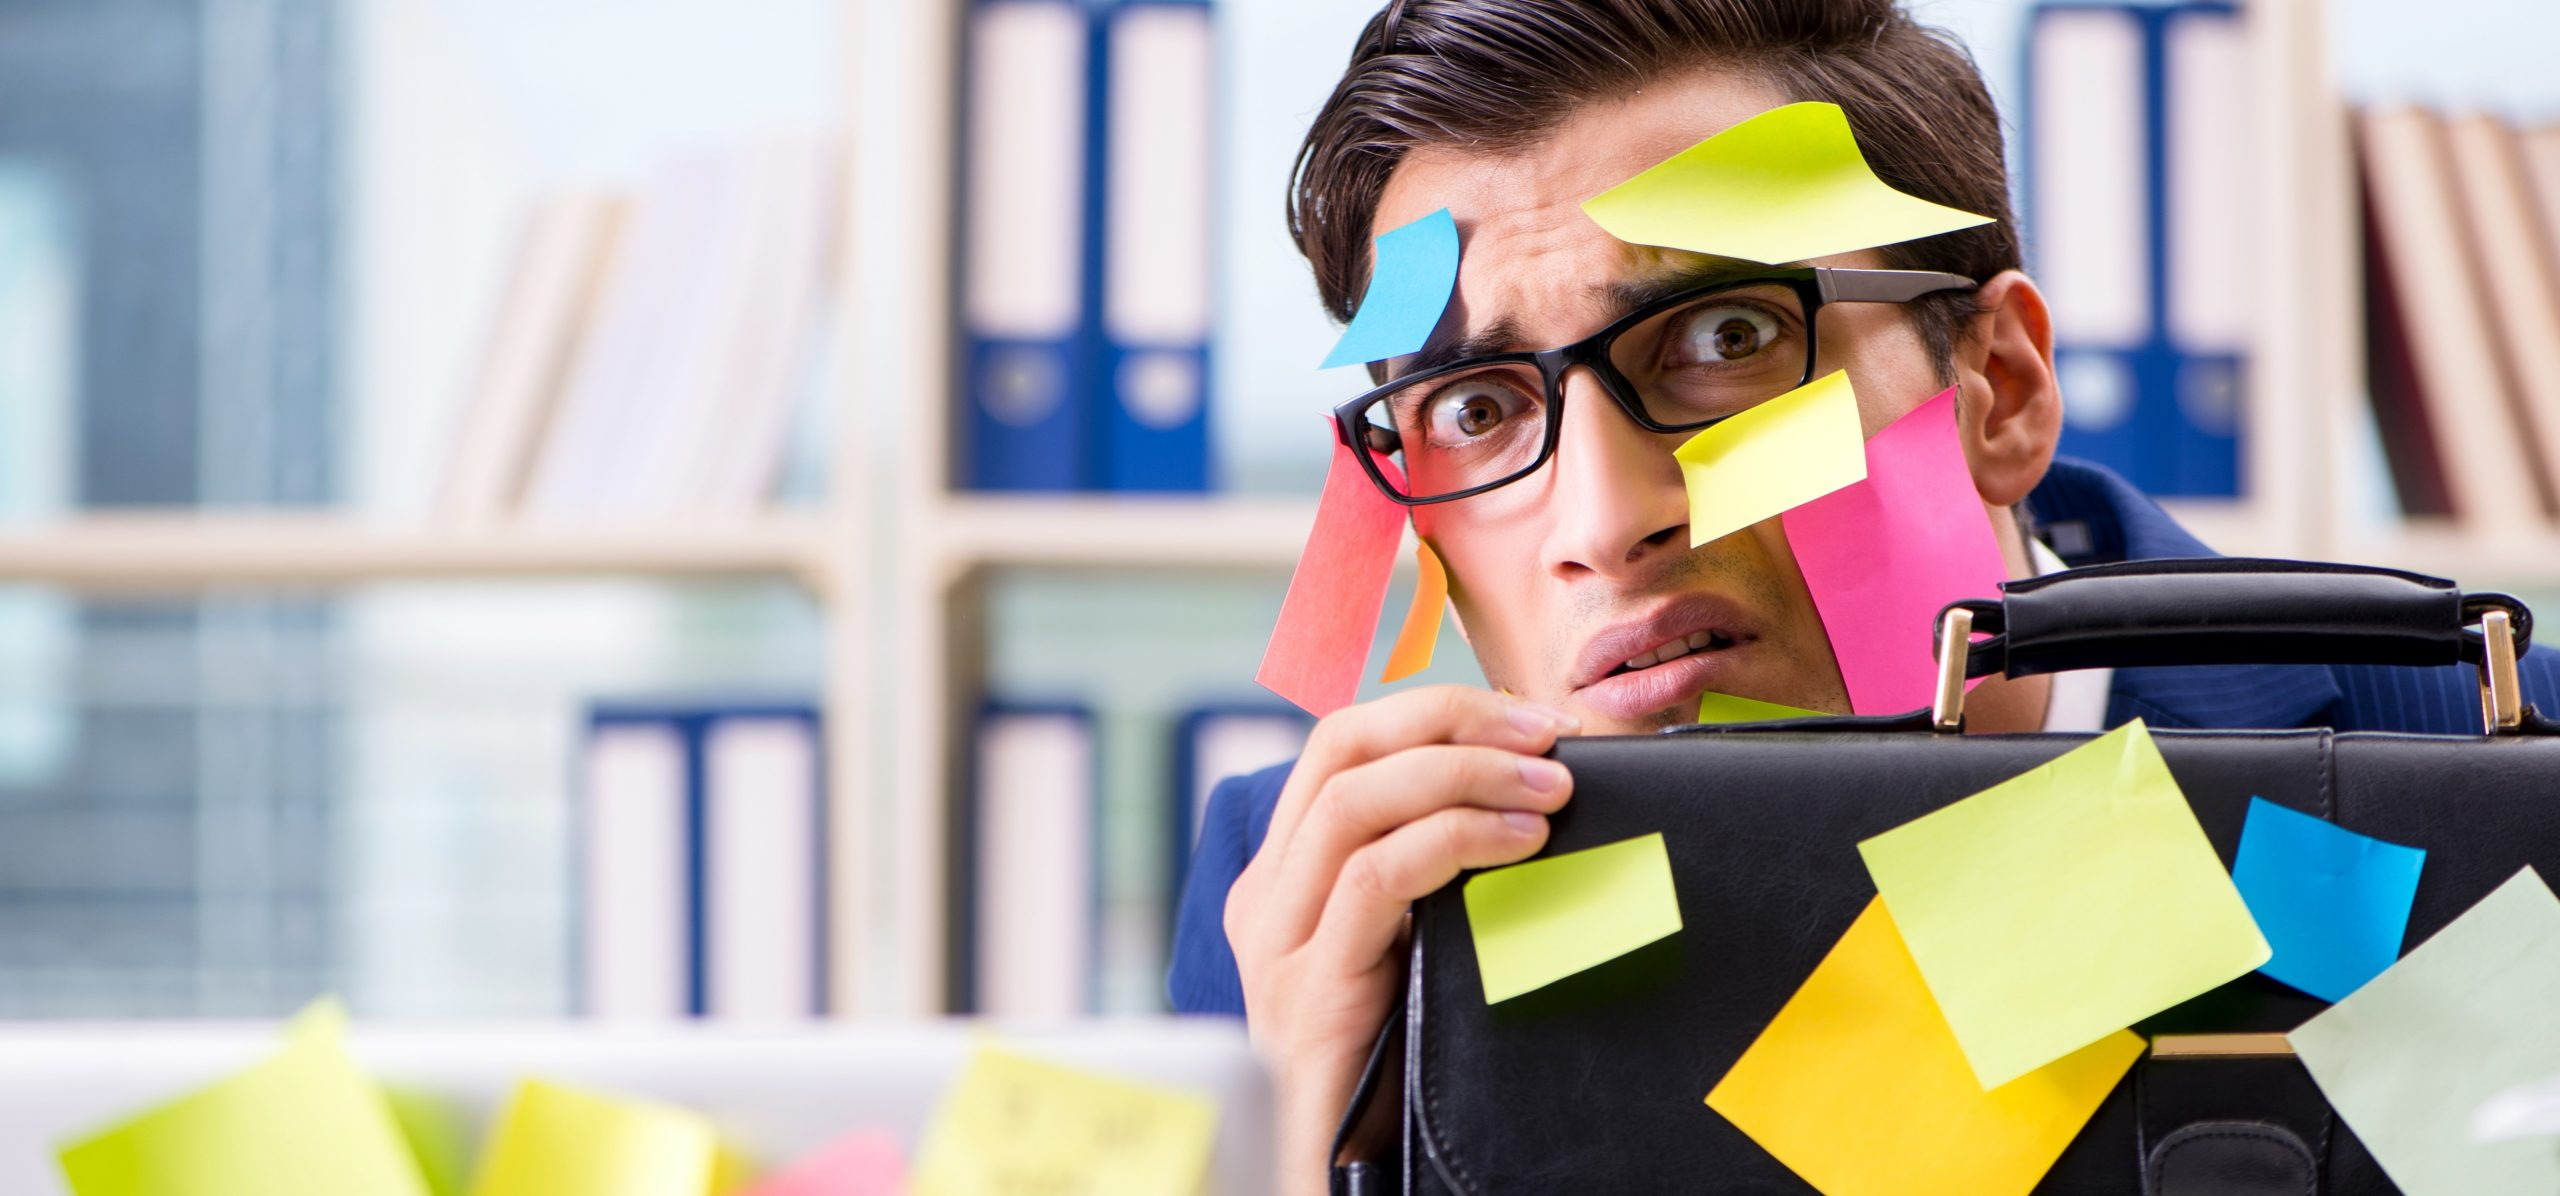 How to be More Organised with these 15 Simple Tips